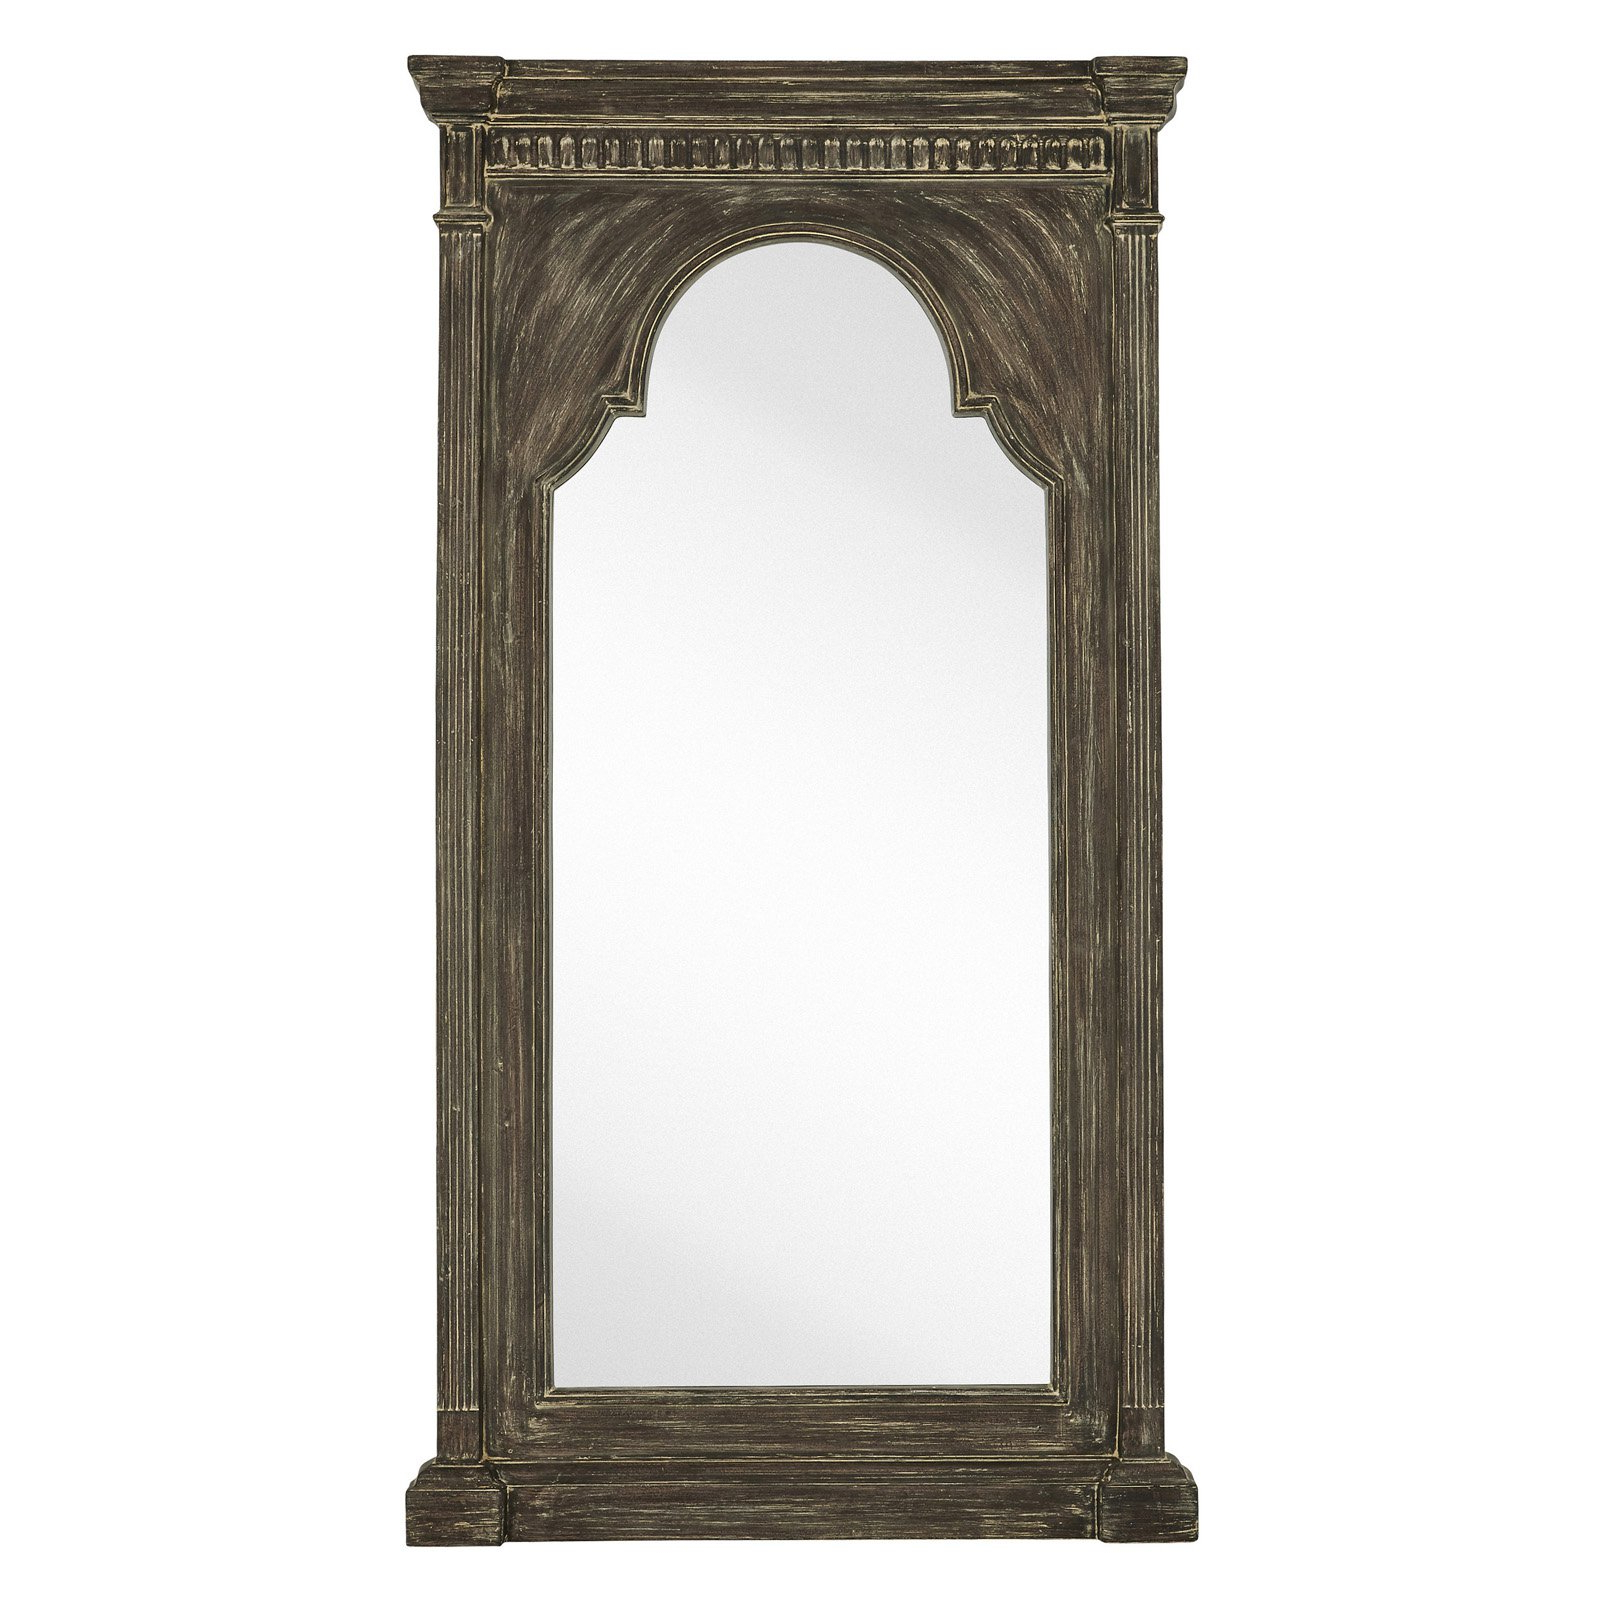 Majestic Oversized Tall Narrow Wall Mirror Regarding Fashionable Long Narrow Wall Mirrors (View 12 of 20)